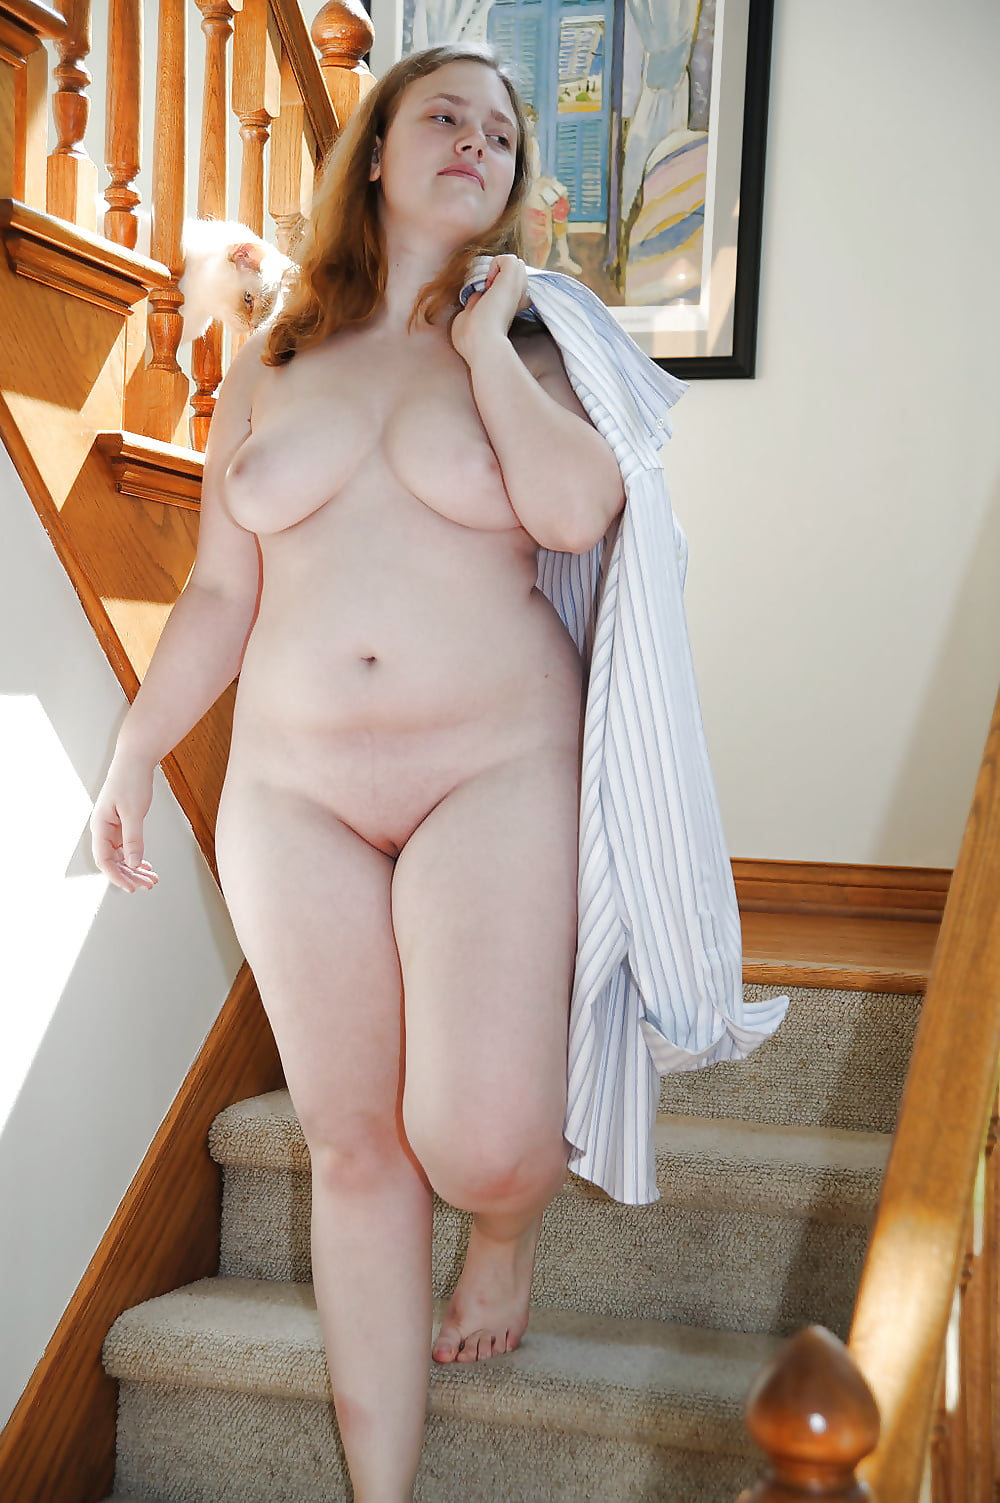 girl-galleries-chubby-pale-nudes-tiger